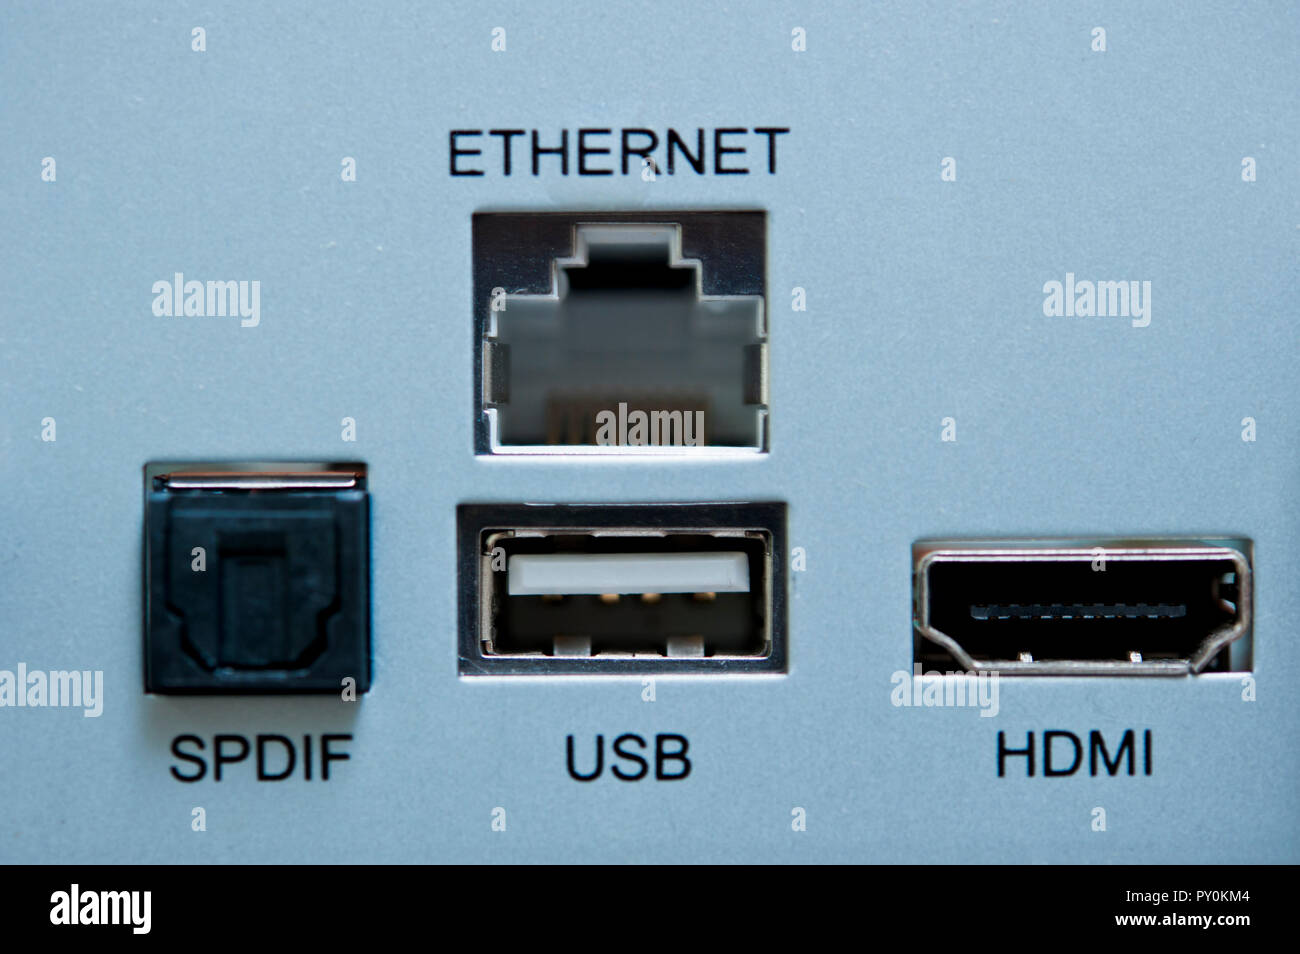 Ethernet, USB, HDMI and SPDIF ports on the back of a set-top box - Stock Image